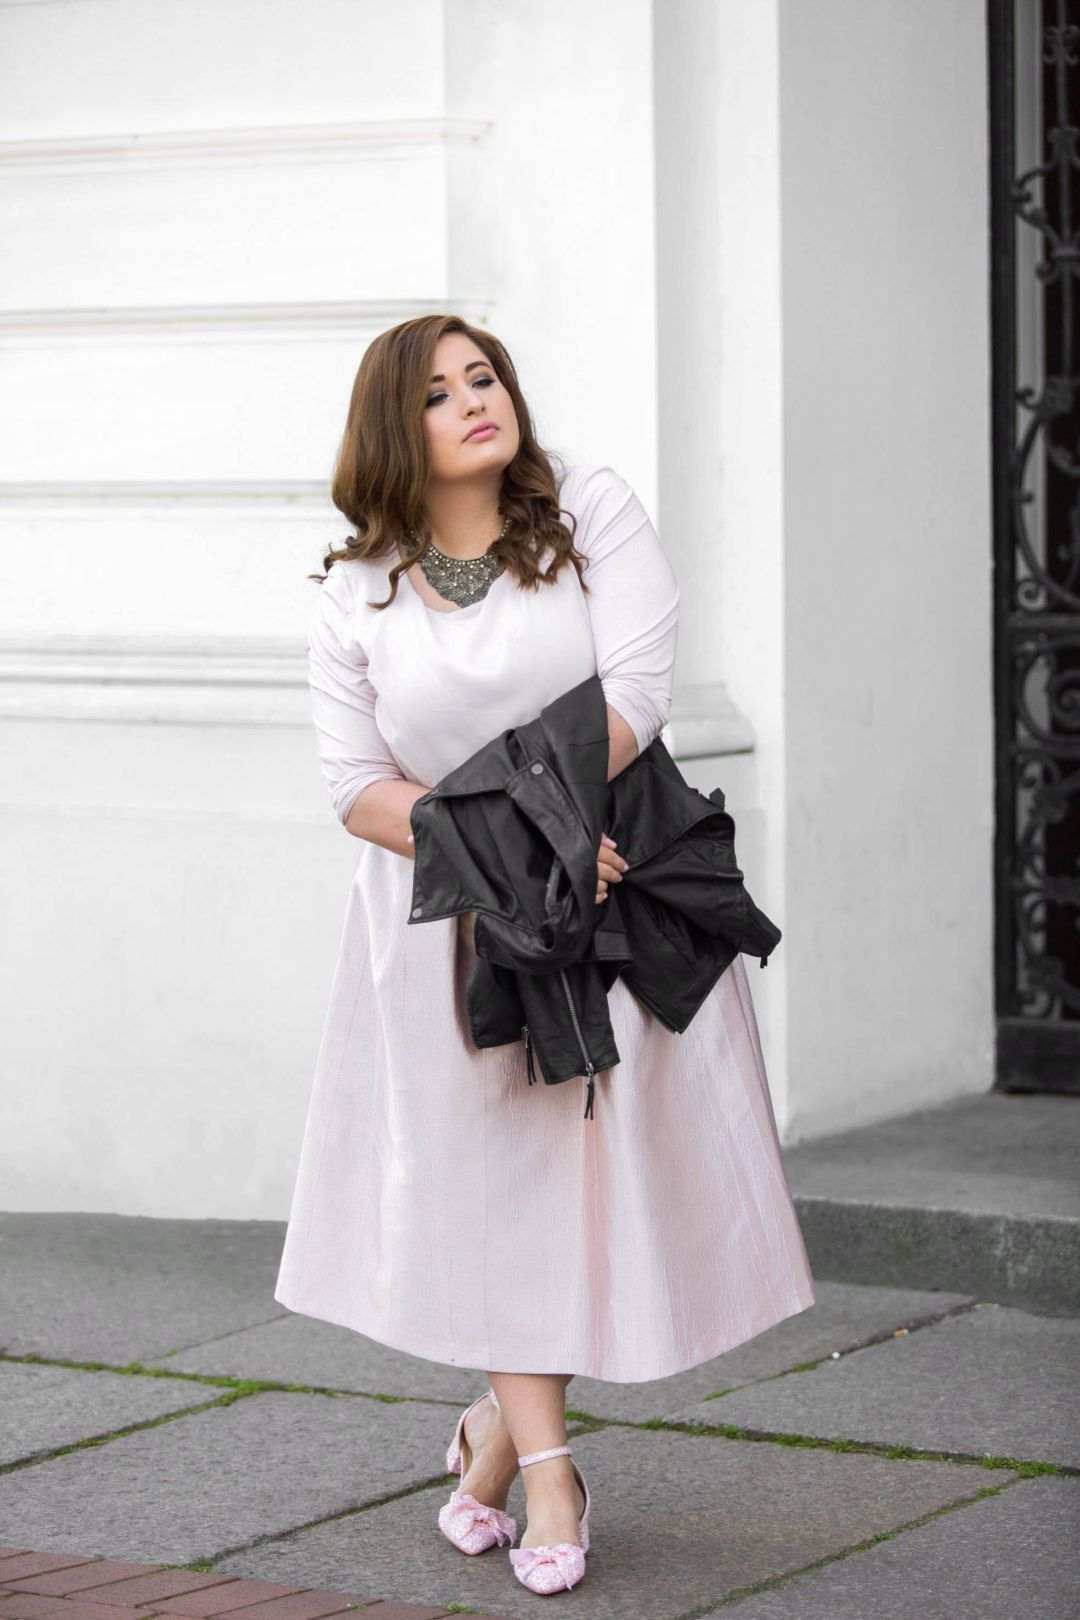 Dress in Soft Pink with Rough Leather Jacket and Matching Pumps   Plus Size  Evening Wear 8fed5f6c3c